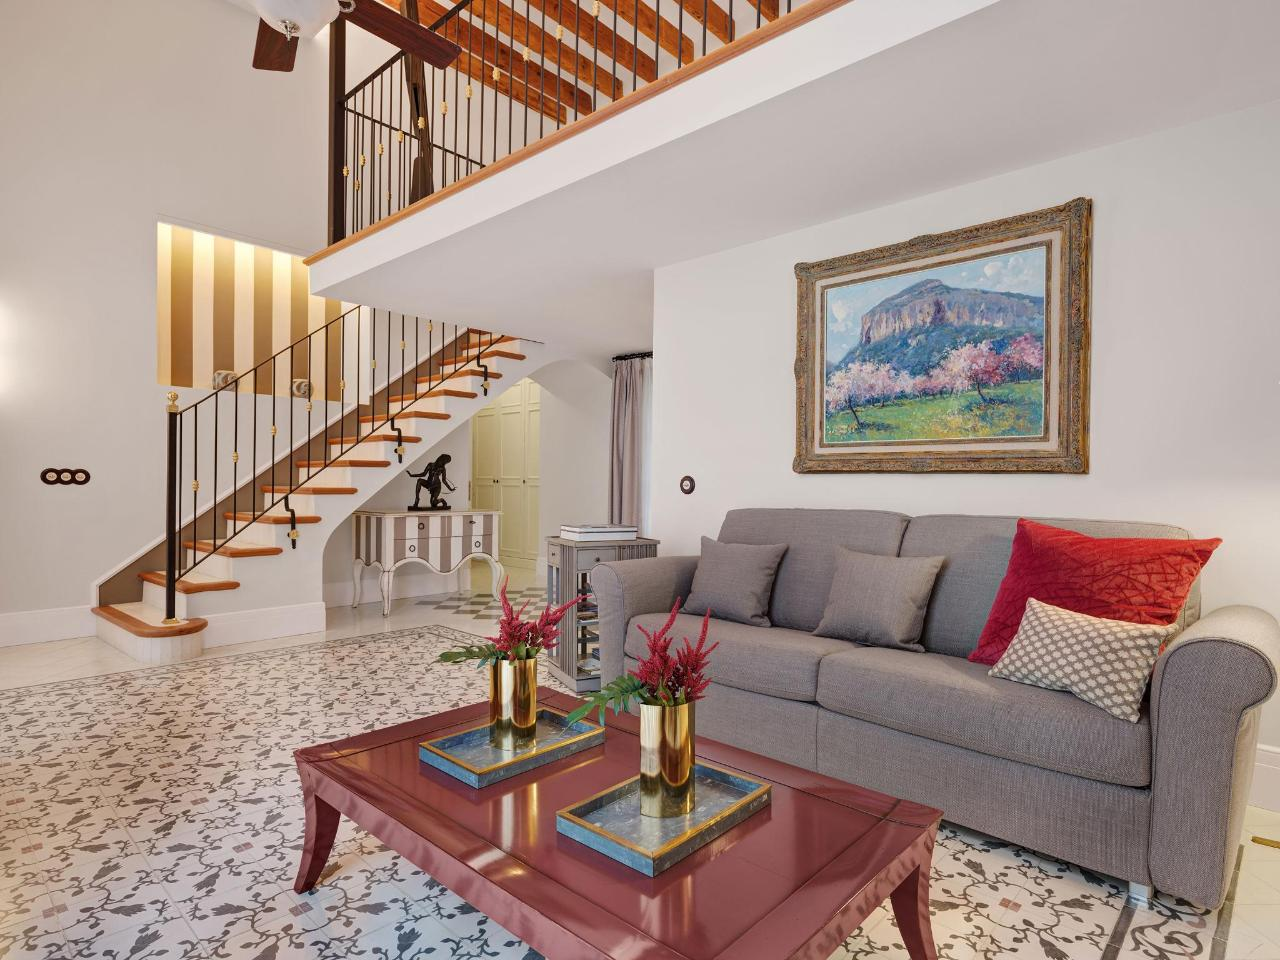 The Loft Suite at Hotel Gloria for a special treat - Palma